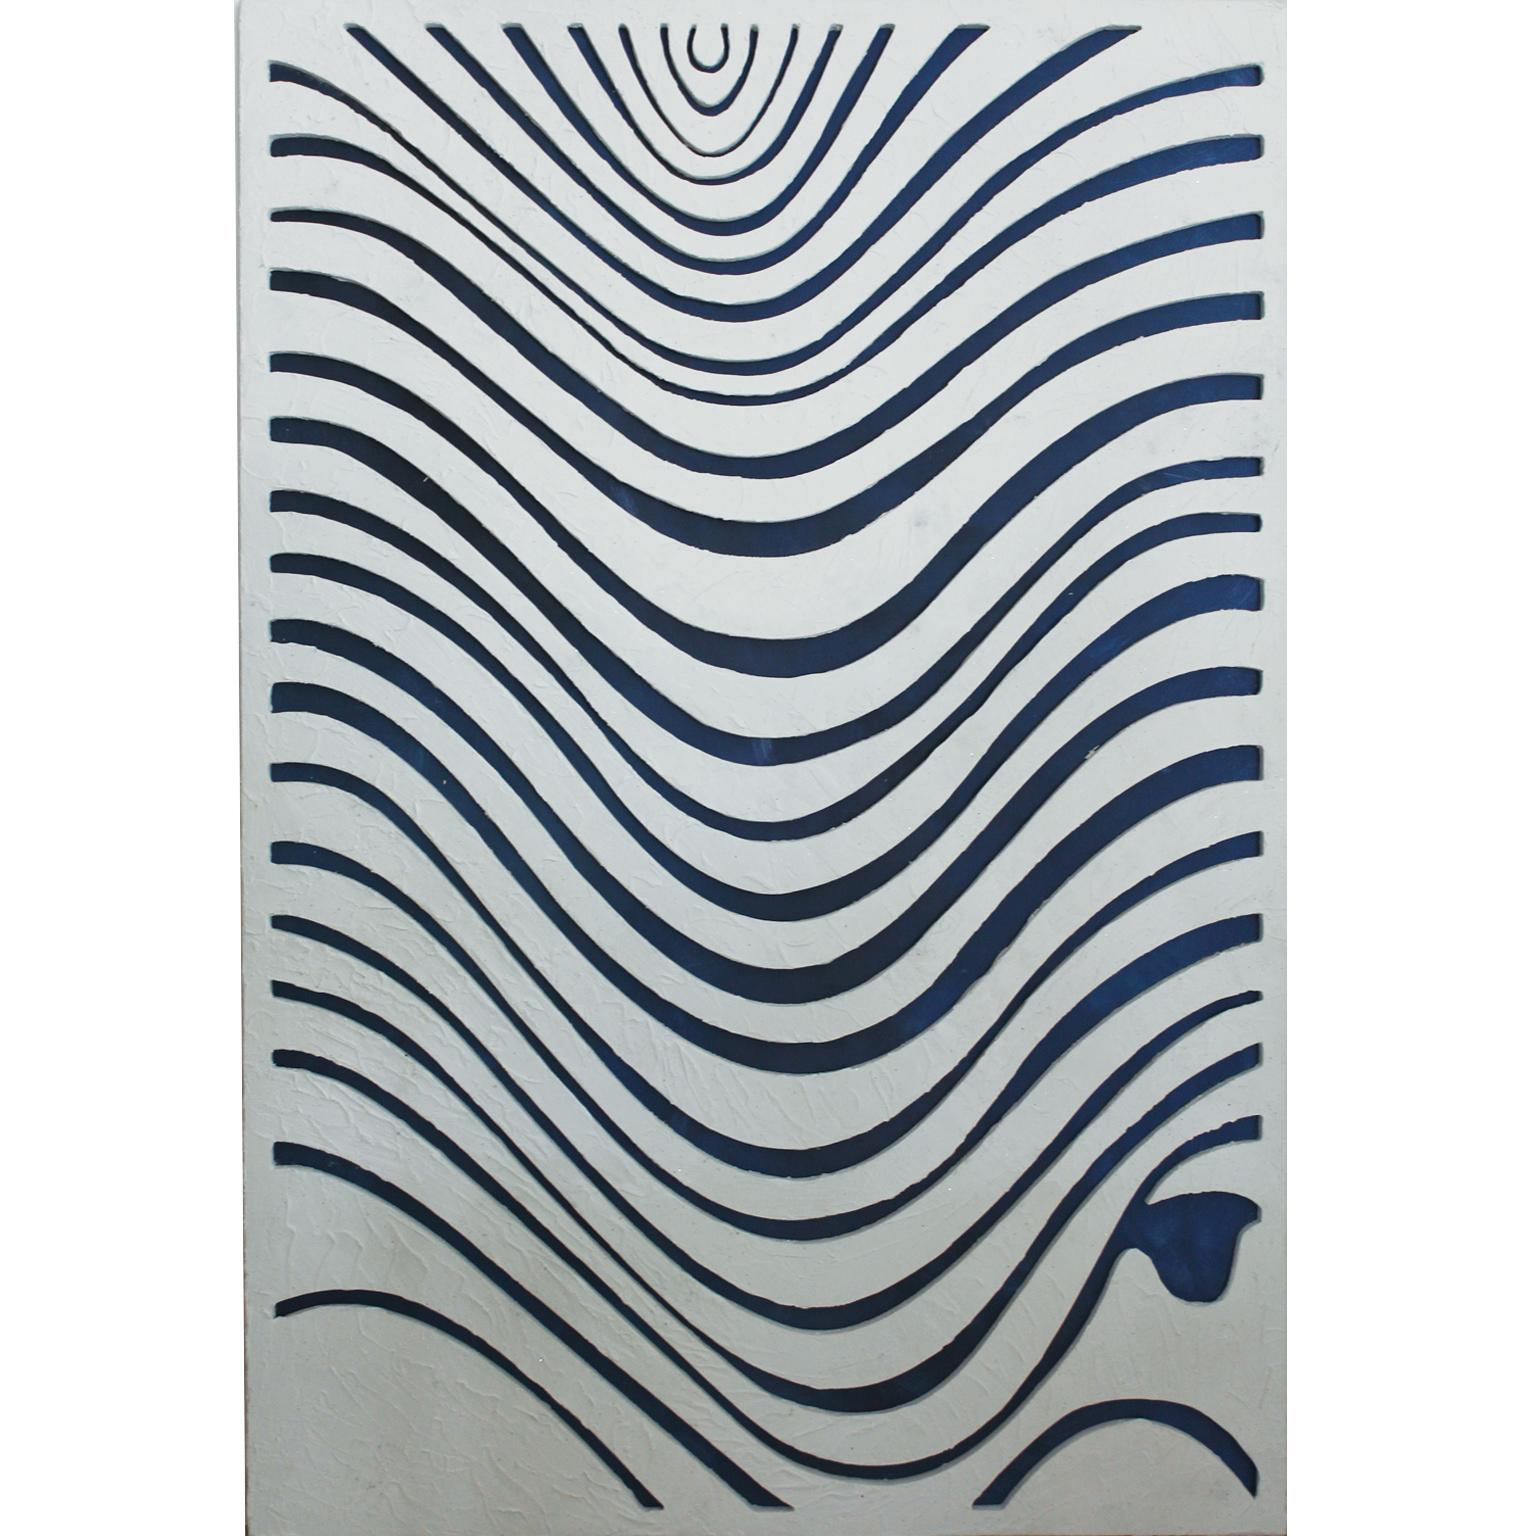 WAVES. Inspired in nature, sand textures, contemporary art.